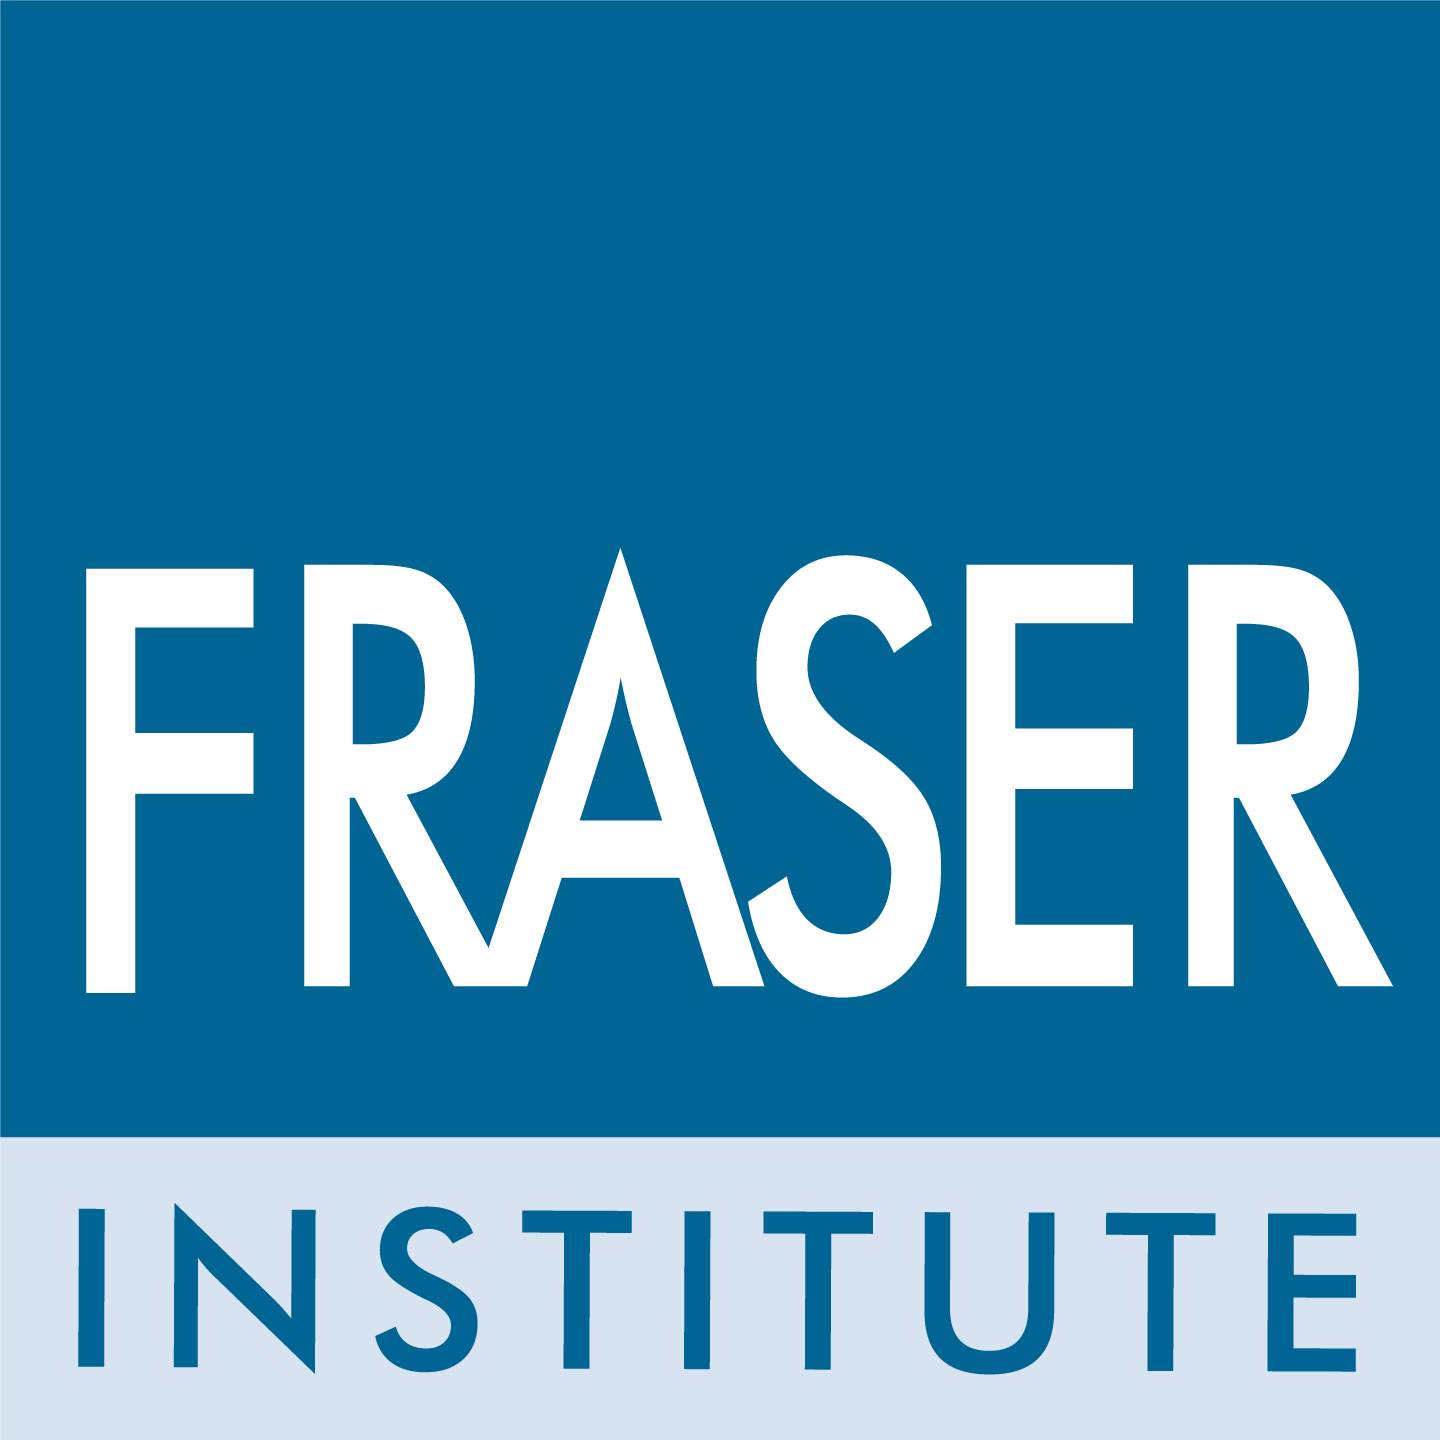 Fraser Institute News Release: Government employees in Ontario paid 10